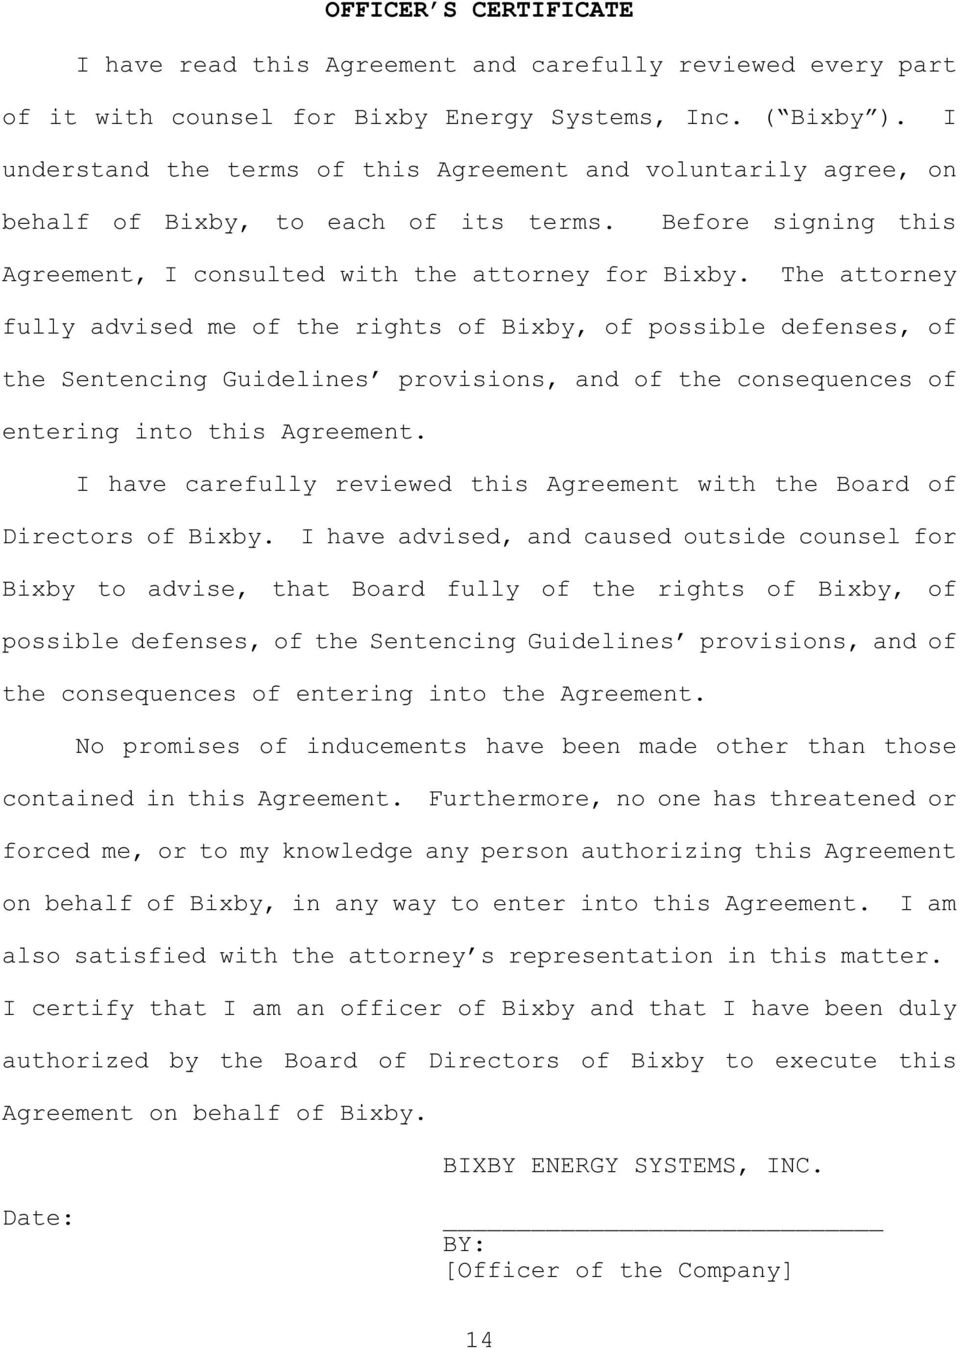 The attorney fully advised me of the rights of Bixby, of possible defenses, of the Sentencing Guidelines provisions, and of the consequences of entering into this Agreement.